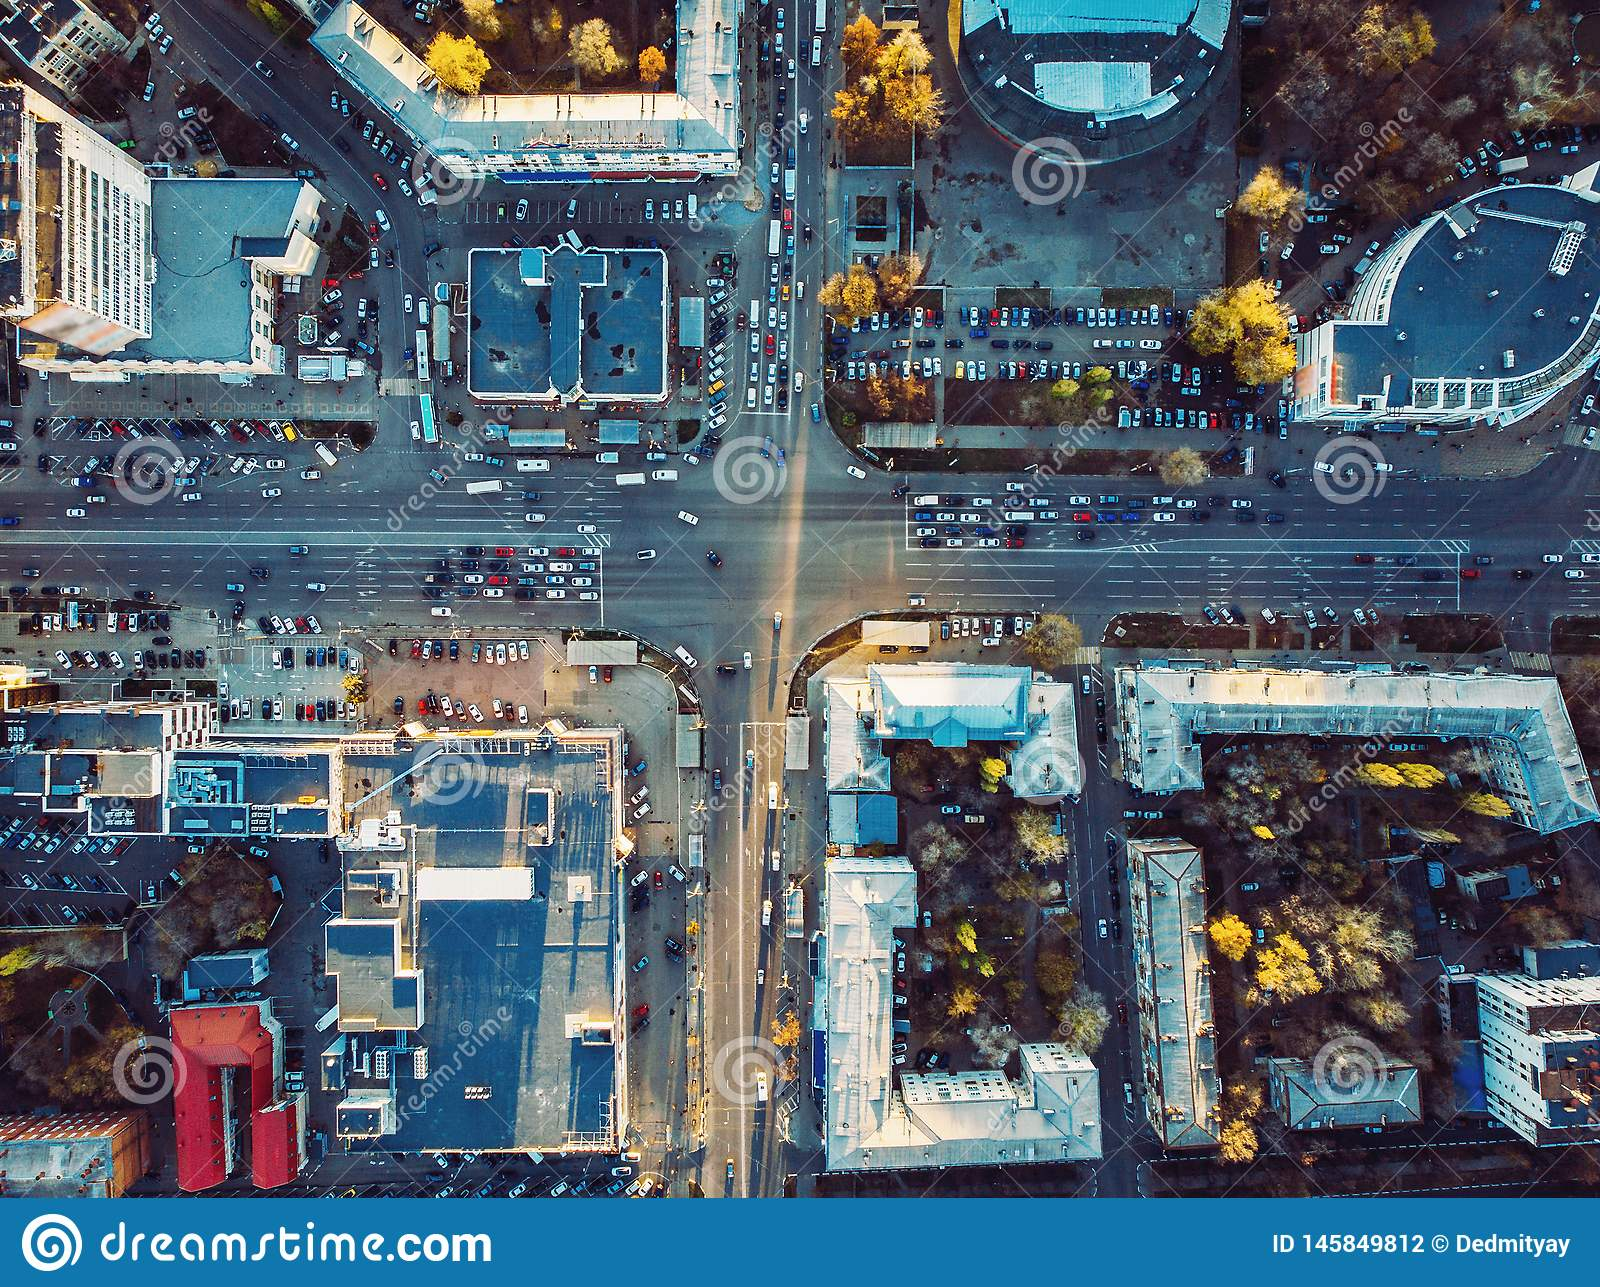 Aerial top view of city asphalt roads with lot of vehicles or car traffic and buildings, modern urban intersections and junctions